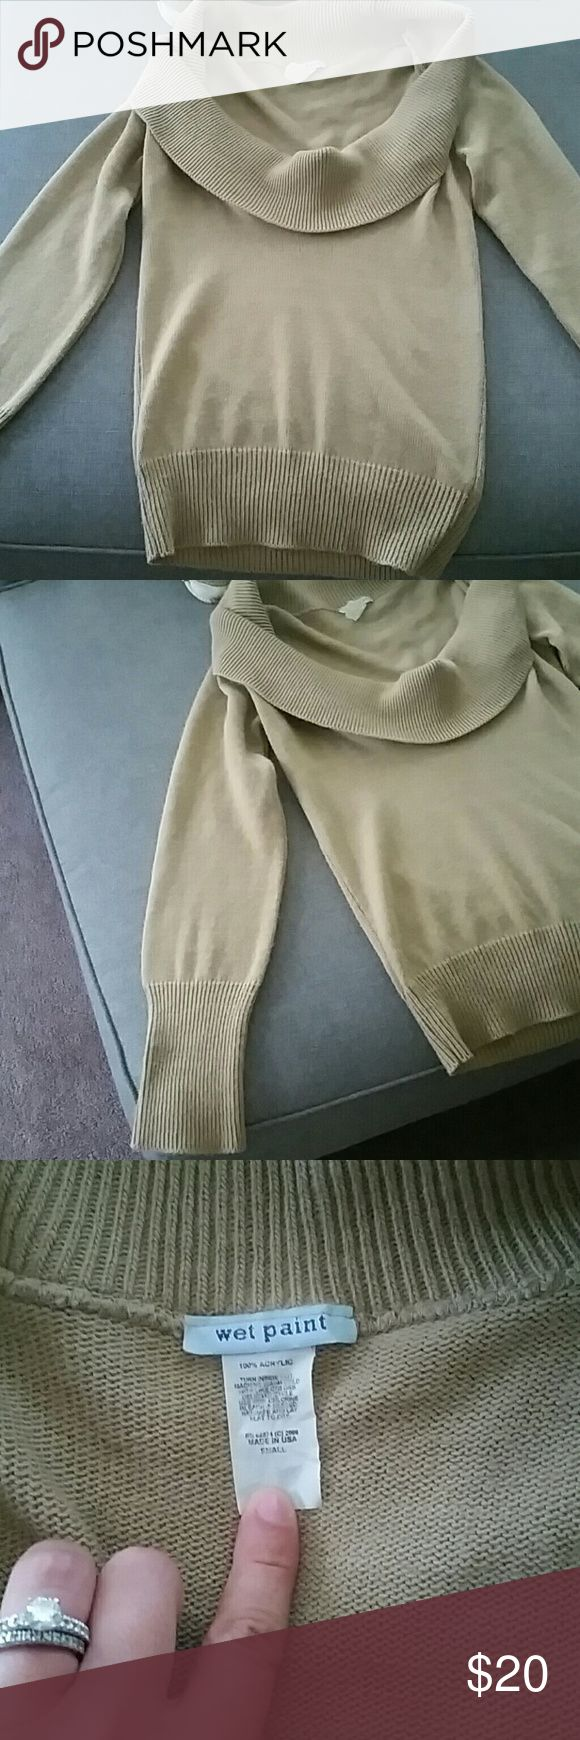 Lovely Woman's Cowl Neck Sweater Up for sale is a good condition nice womans cowl neck sweater. Its a size small but runs big more like a medium. Its good quality and is thick. Great for the work place or a cute day outfit to keep you snug! Brand is wet paint. Nice neutral color as well. Wet Paint Tops